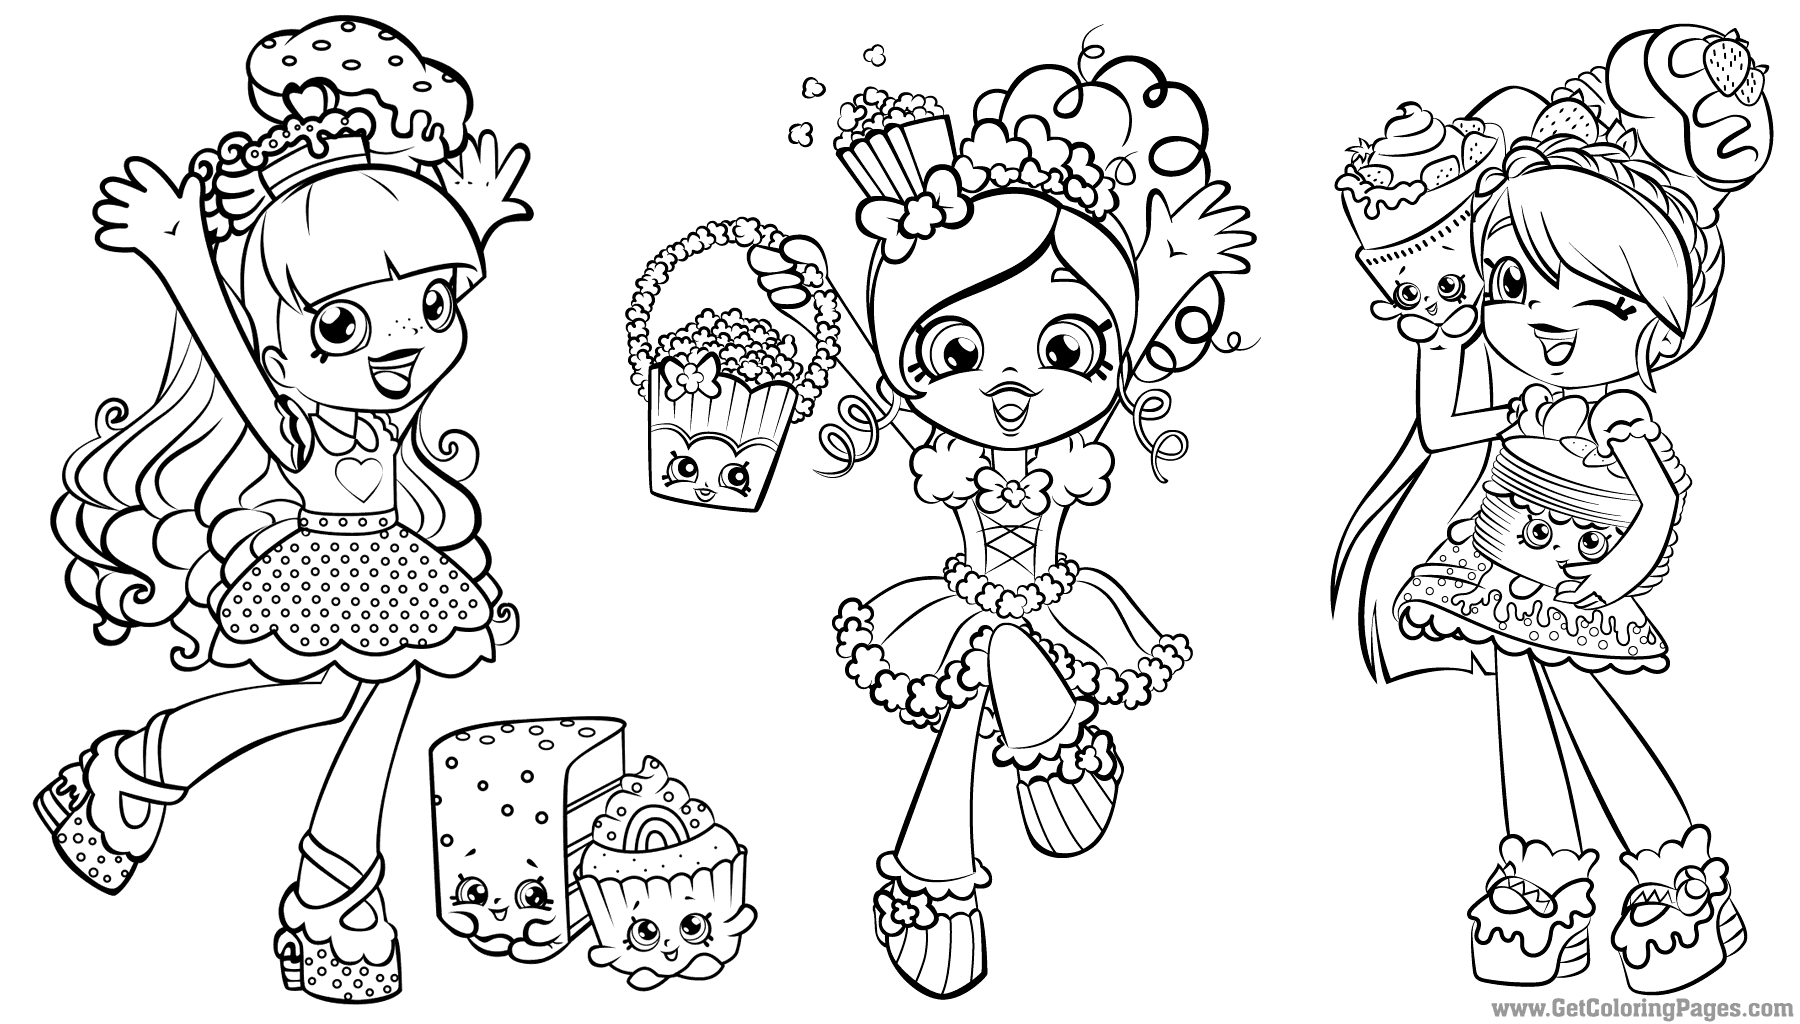 Pin By Nora Demeter On Shopkins Cute Coloring Pages Shopkins Colouring Pages Shopkin Coloring Pages